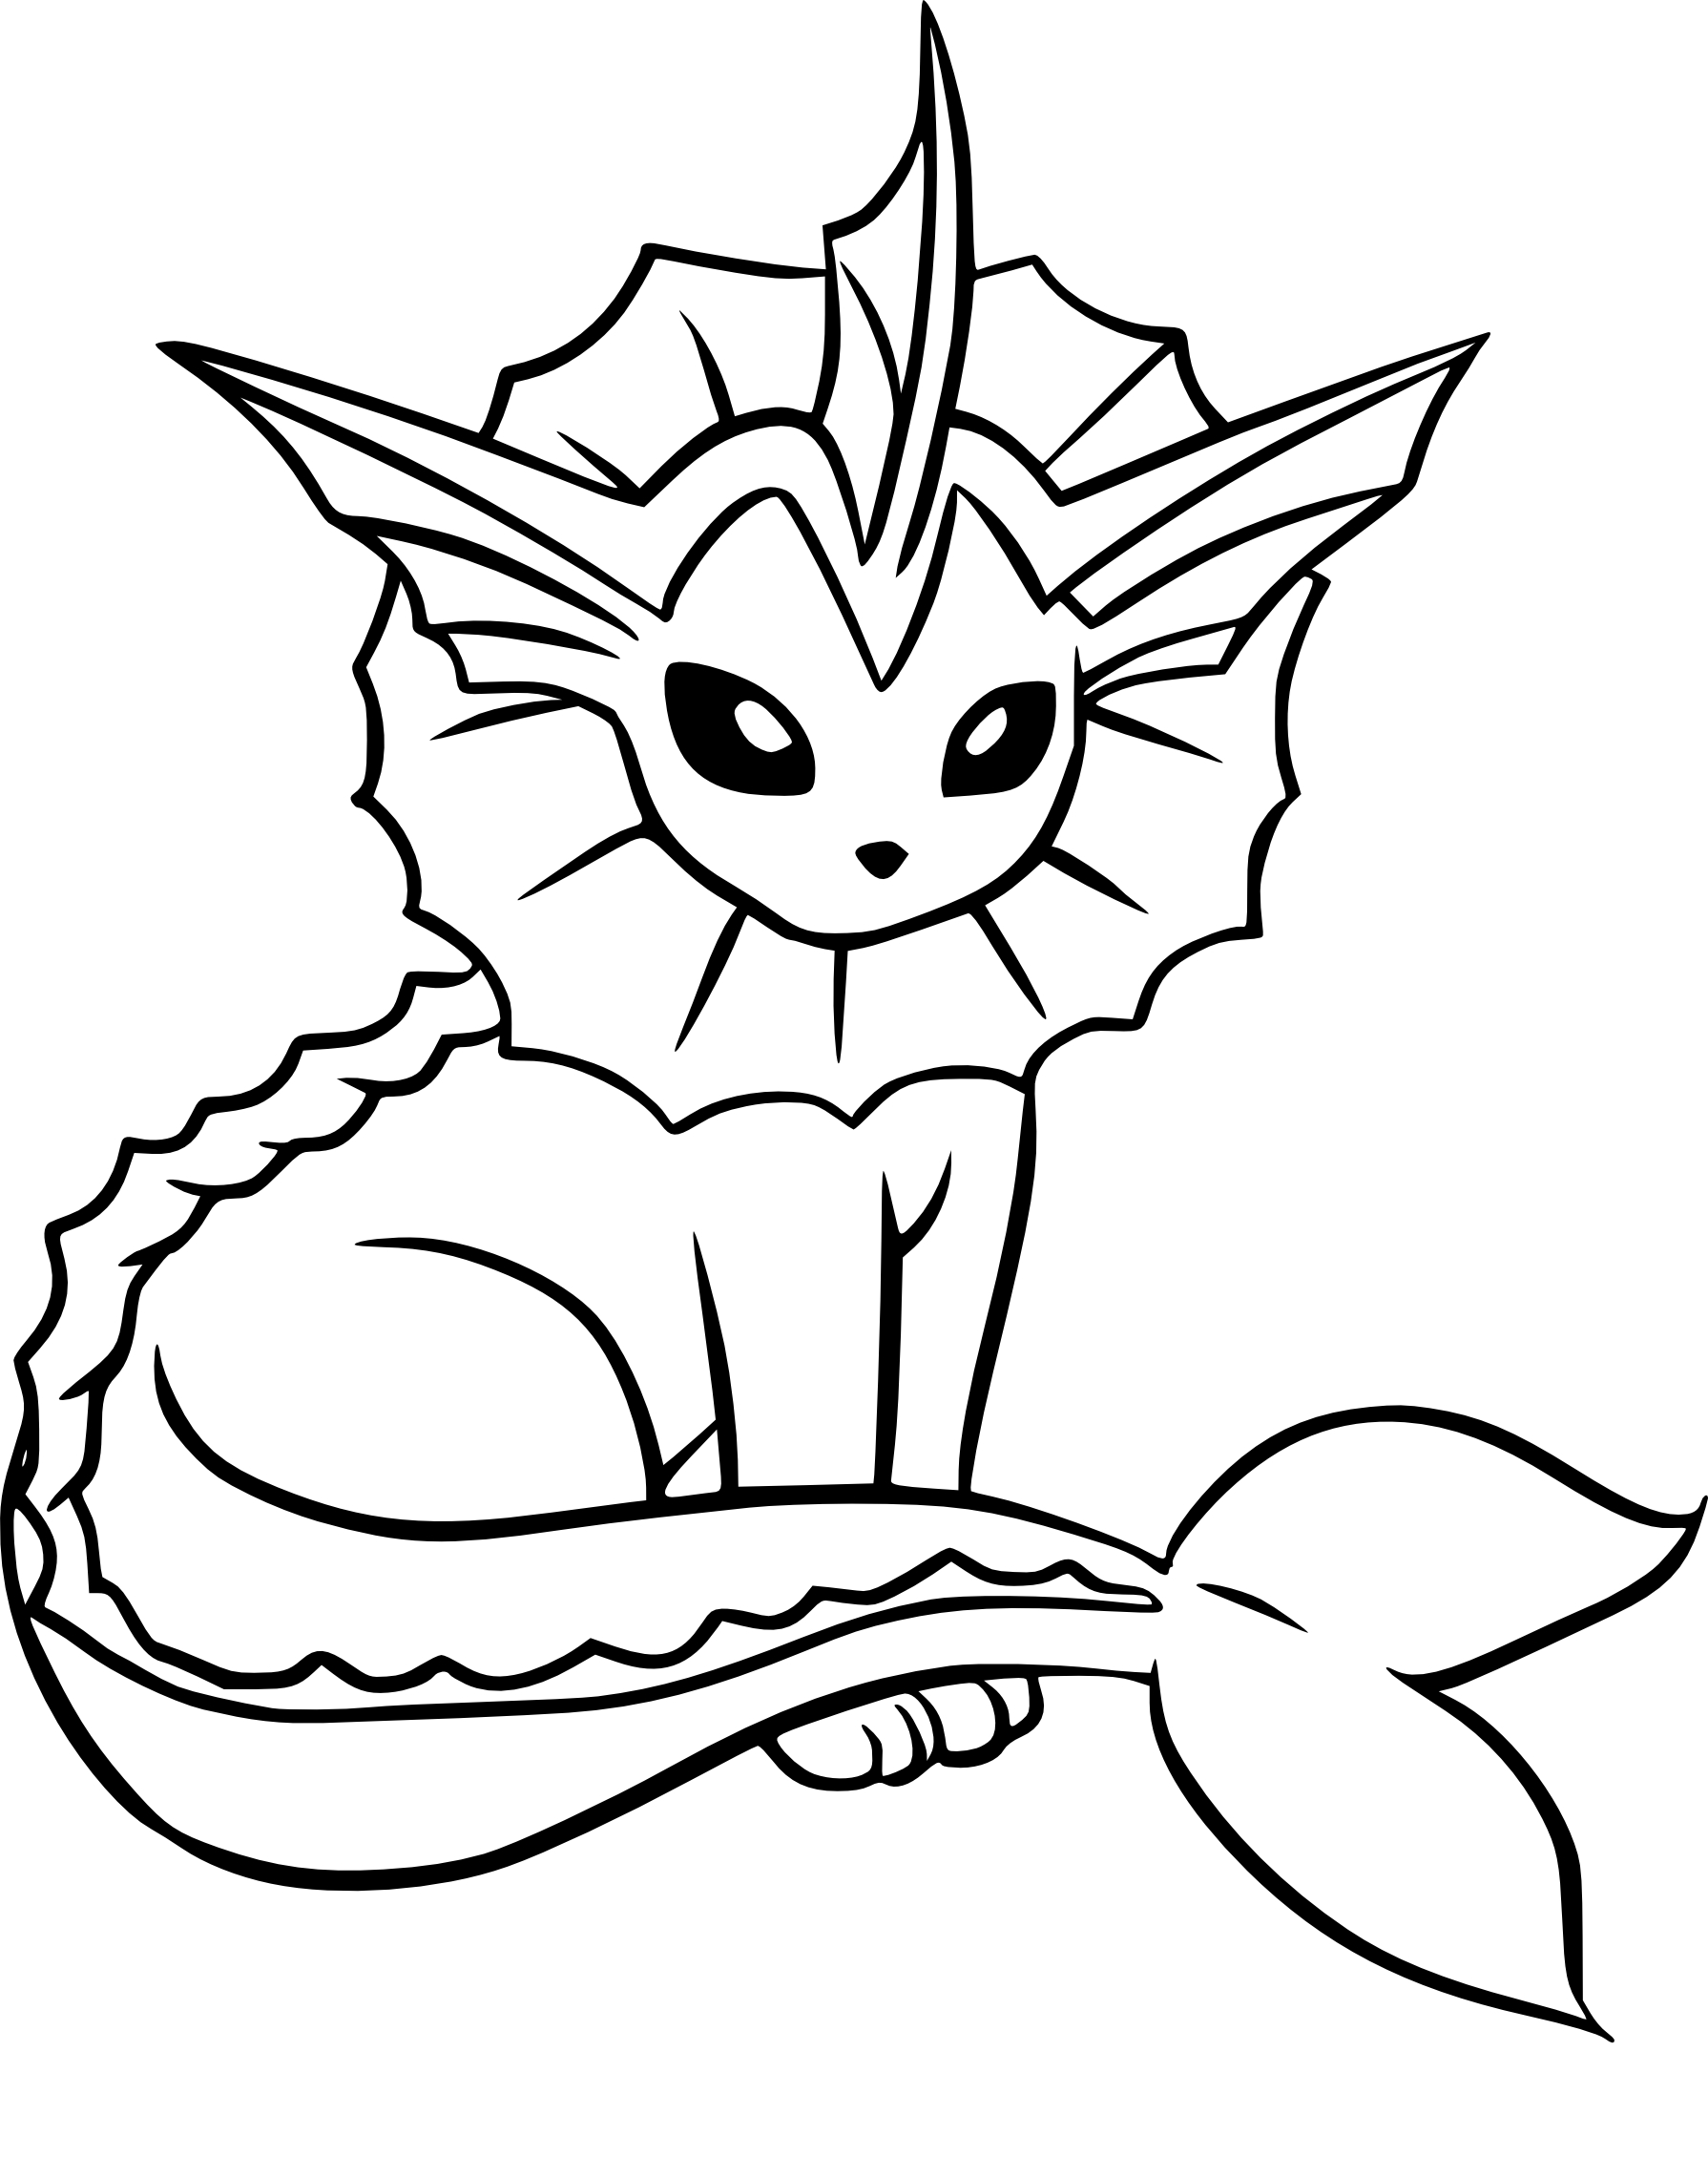 Coloriage aquali pokemon imprimer - Coloriage de pokemon a imprimer ...